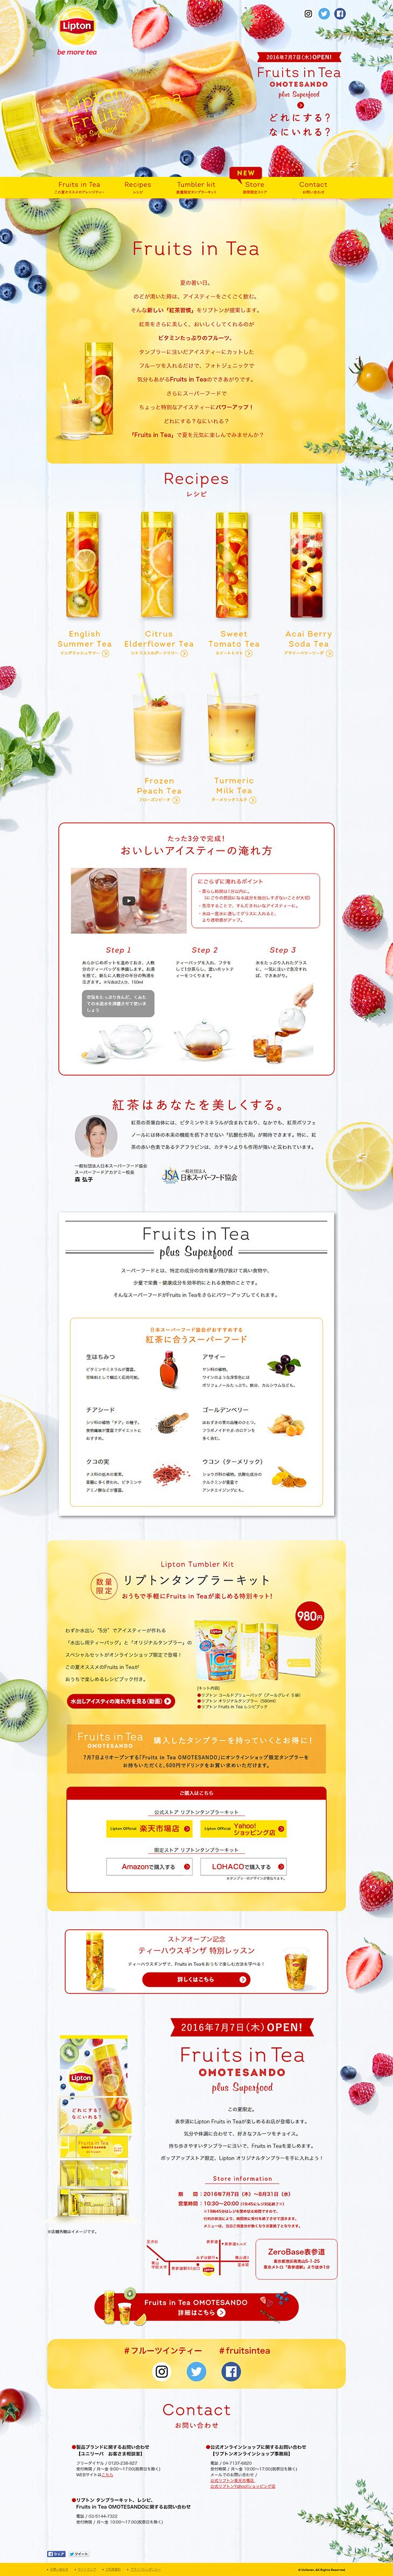 Lipton Fruits in Tea http://teapaus.com/healthiest-teas-to-drink/what-kind-of-tea-is-good-for-cold/